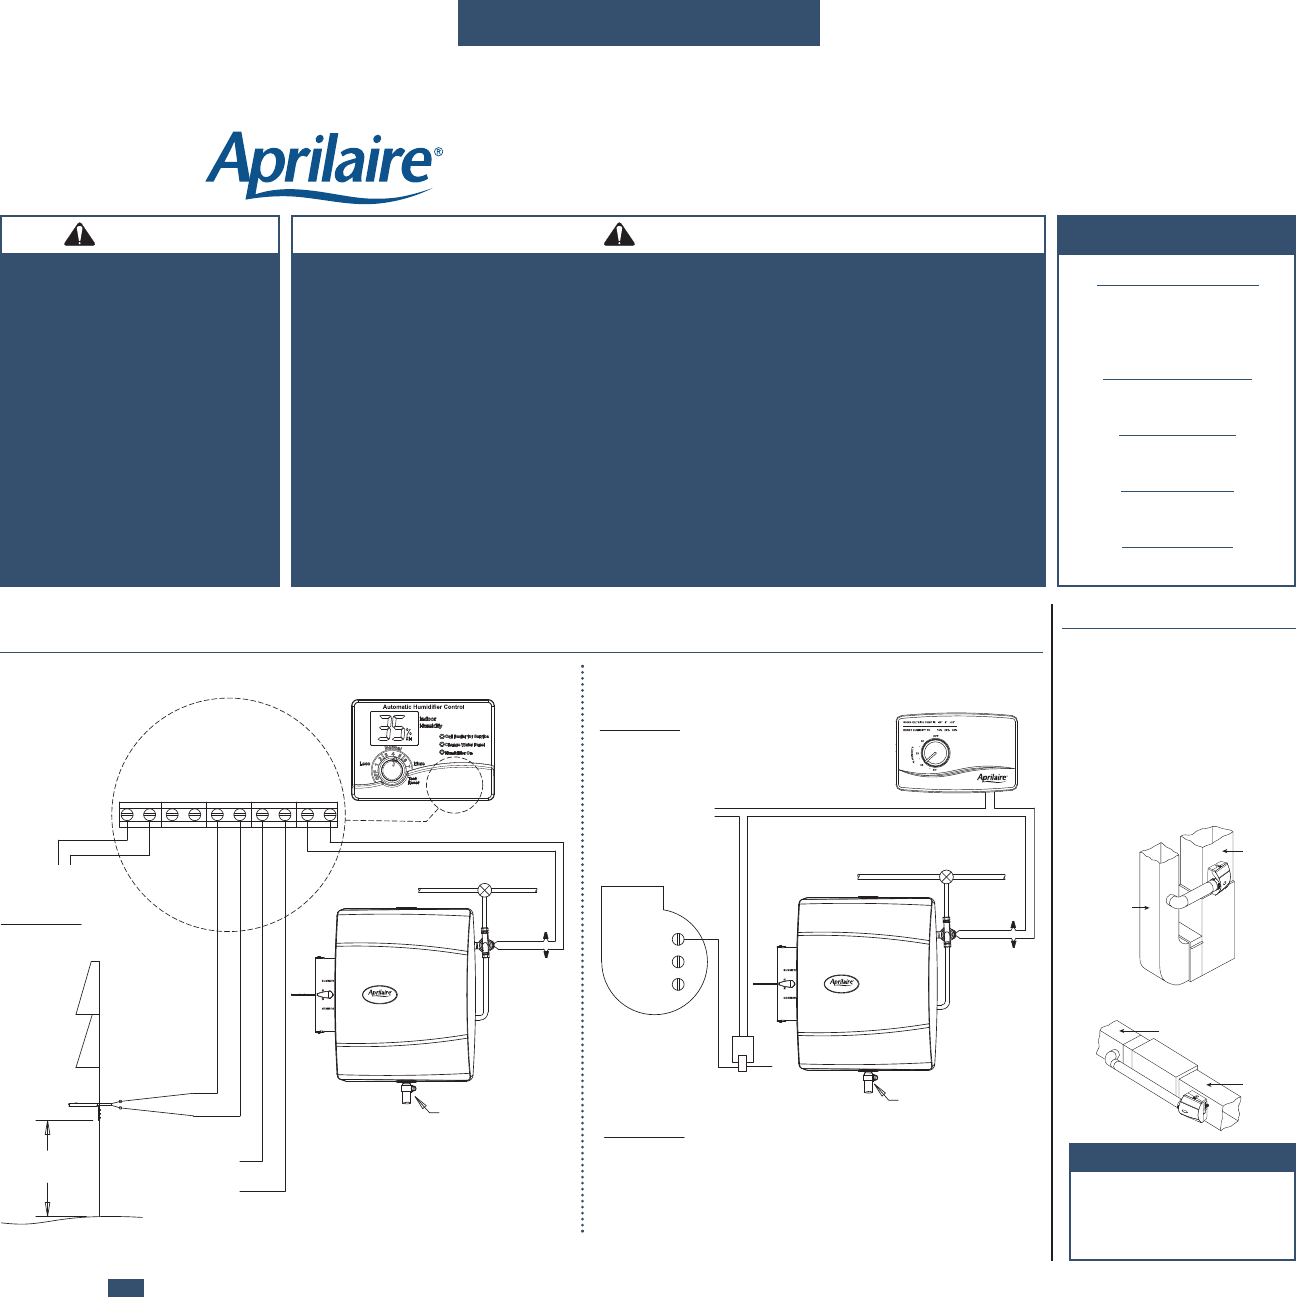 aprilaire humidifier wiring diagram Collection-Wiring Diagram Download Free Fit U003d2217 Aprilaire Humidifier 00m User Guide Manuals line 16 11-l